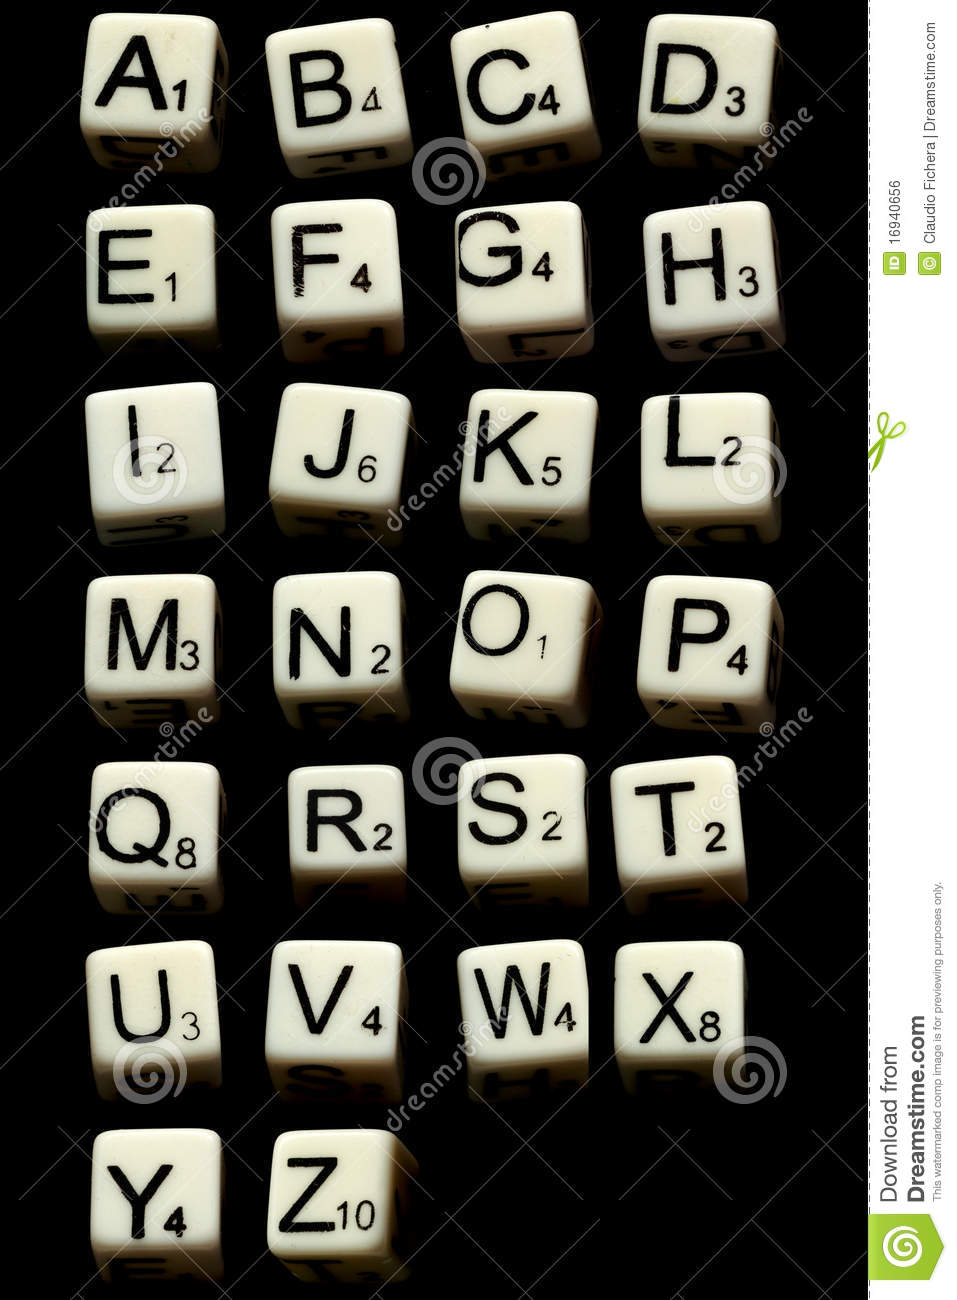 Letter dice game stock photo. Image of game, objects   16940656